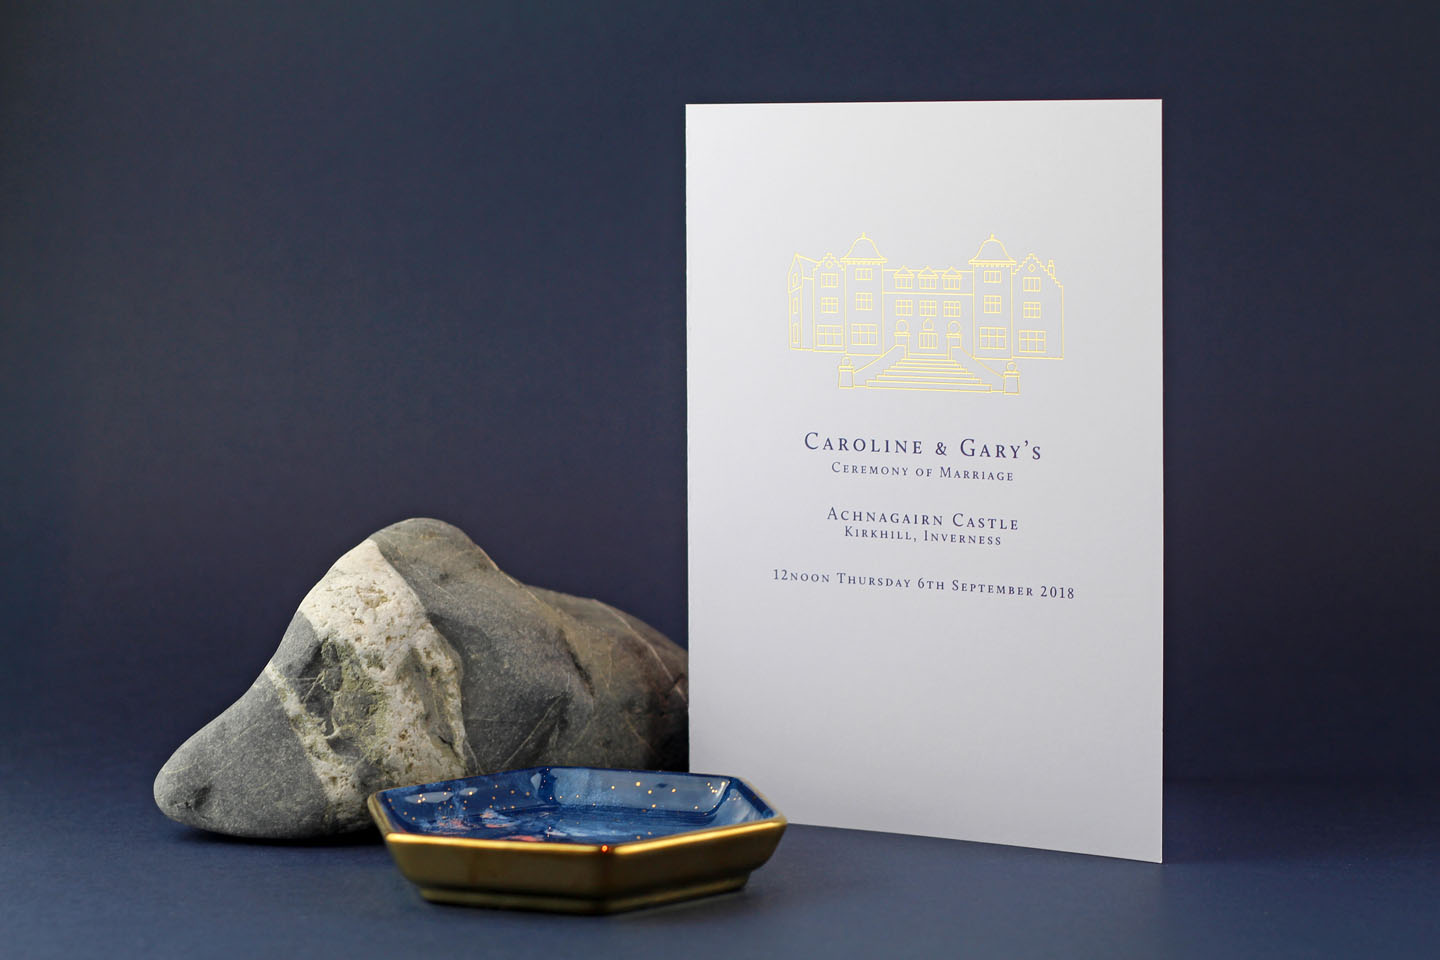 Modern Venue Wedding Order of Service in Gold | A Scottish Wedding in the Great Outdoors - The Foil Invite Company